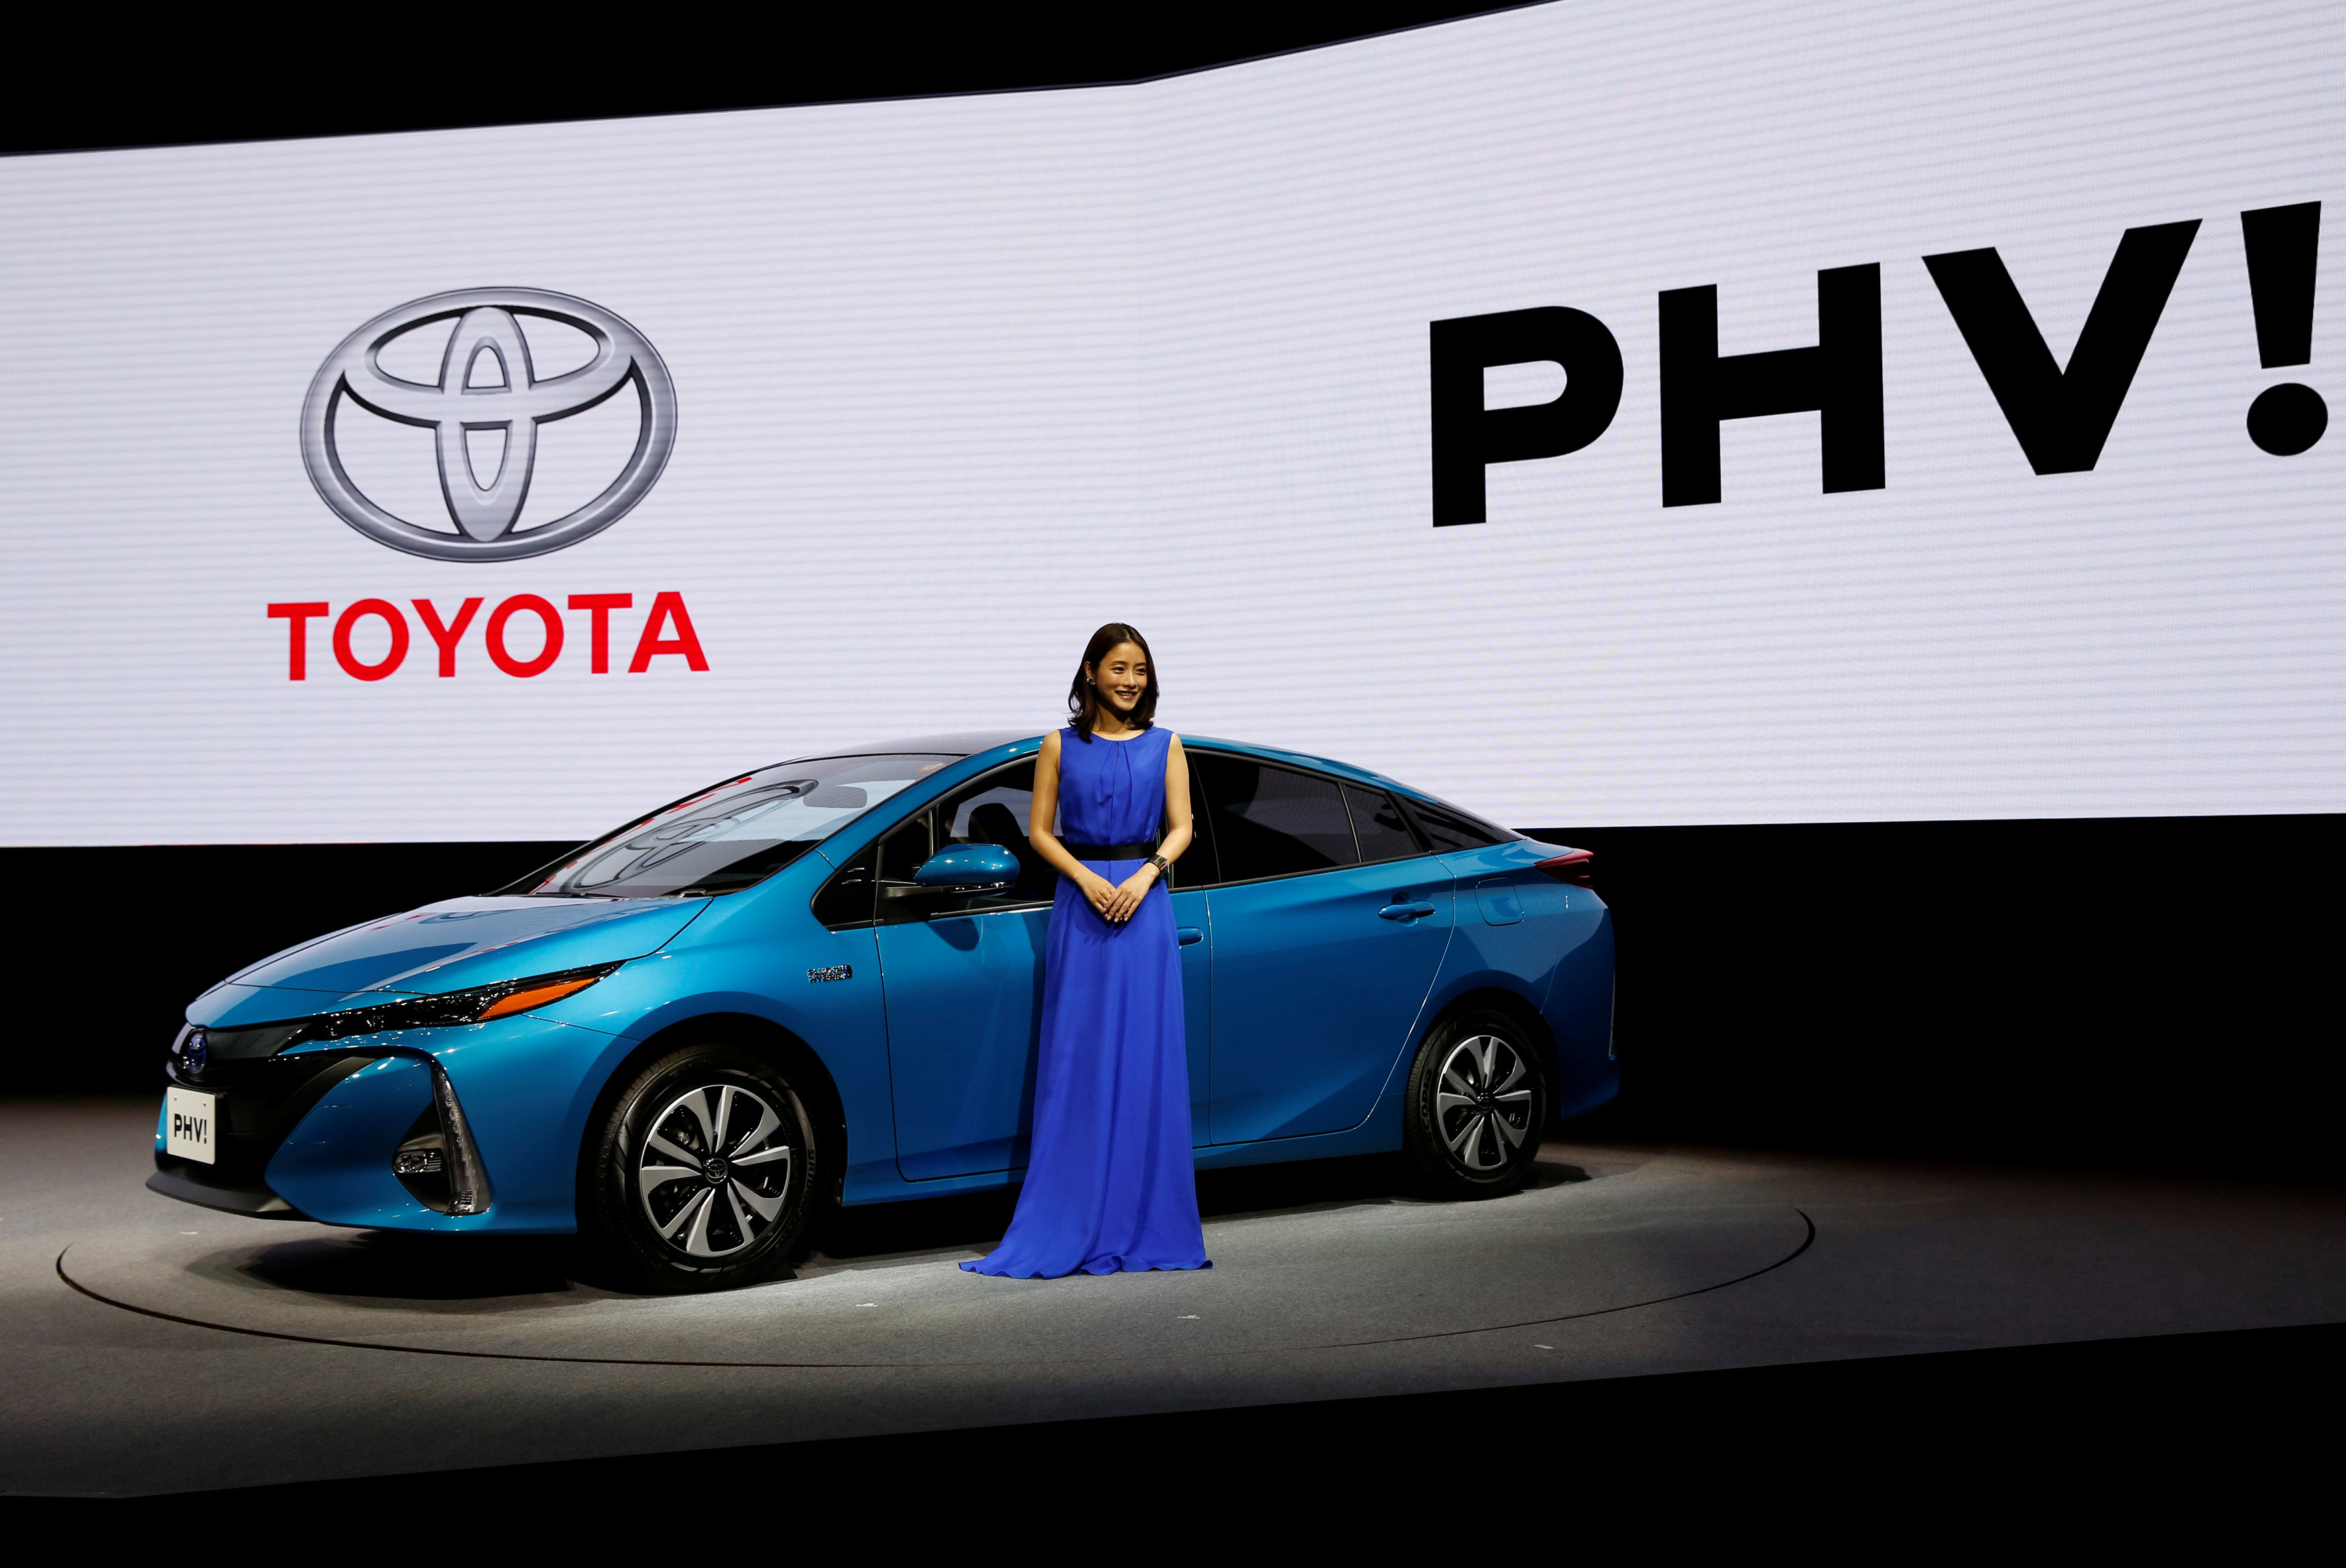 Japanese actress Satomi Ishihara poses next to Toyota's Prius PHV Plug-in-Hybrid vehicle, also known as Prius Prime in the U.S., during an event to mark the launch of the car in Japan on Wednesday. | REUTERS